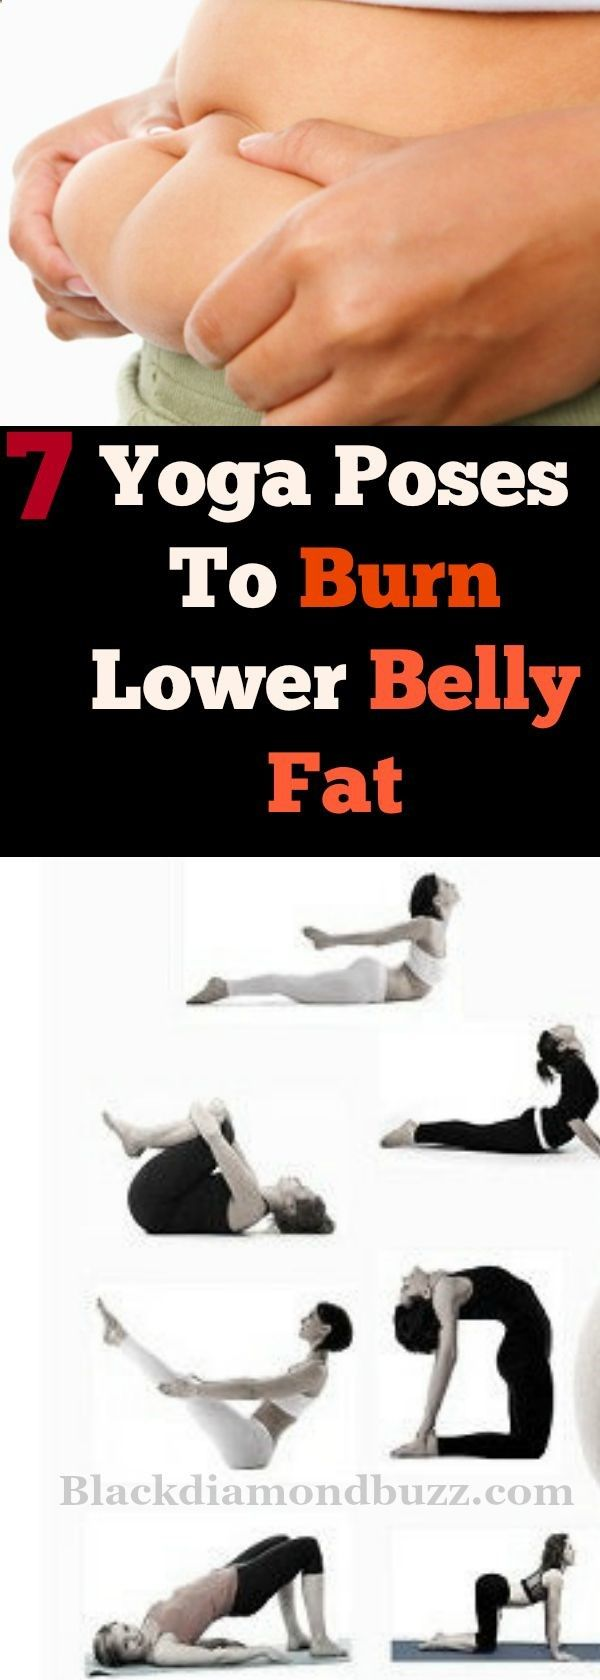 Best Yoga Poses To Burn Lower Belly Fat and flabby Love handle in